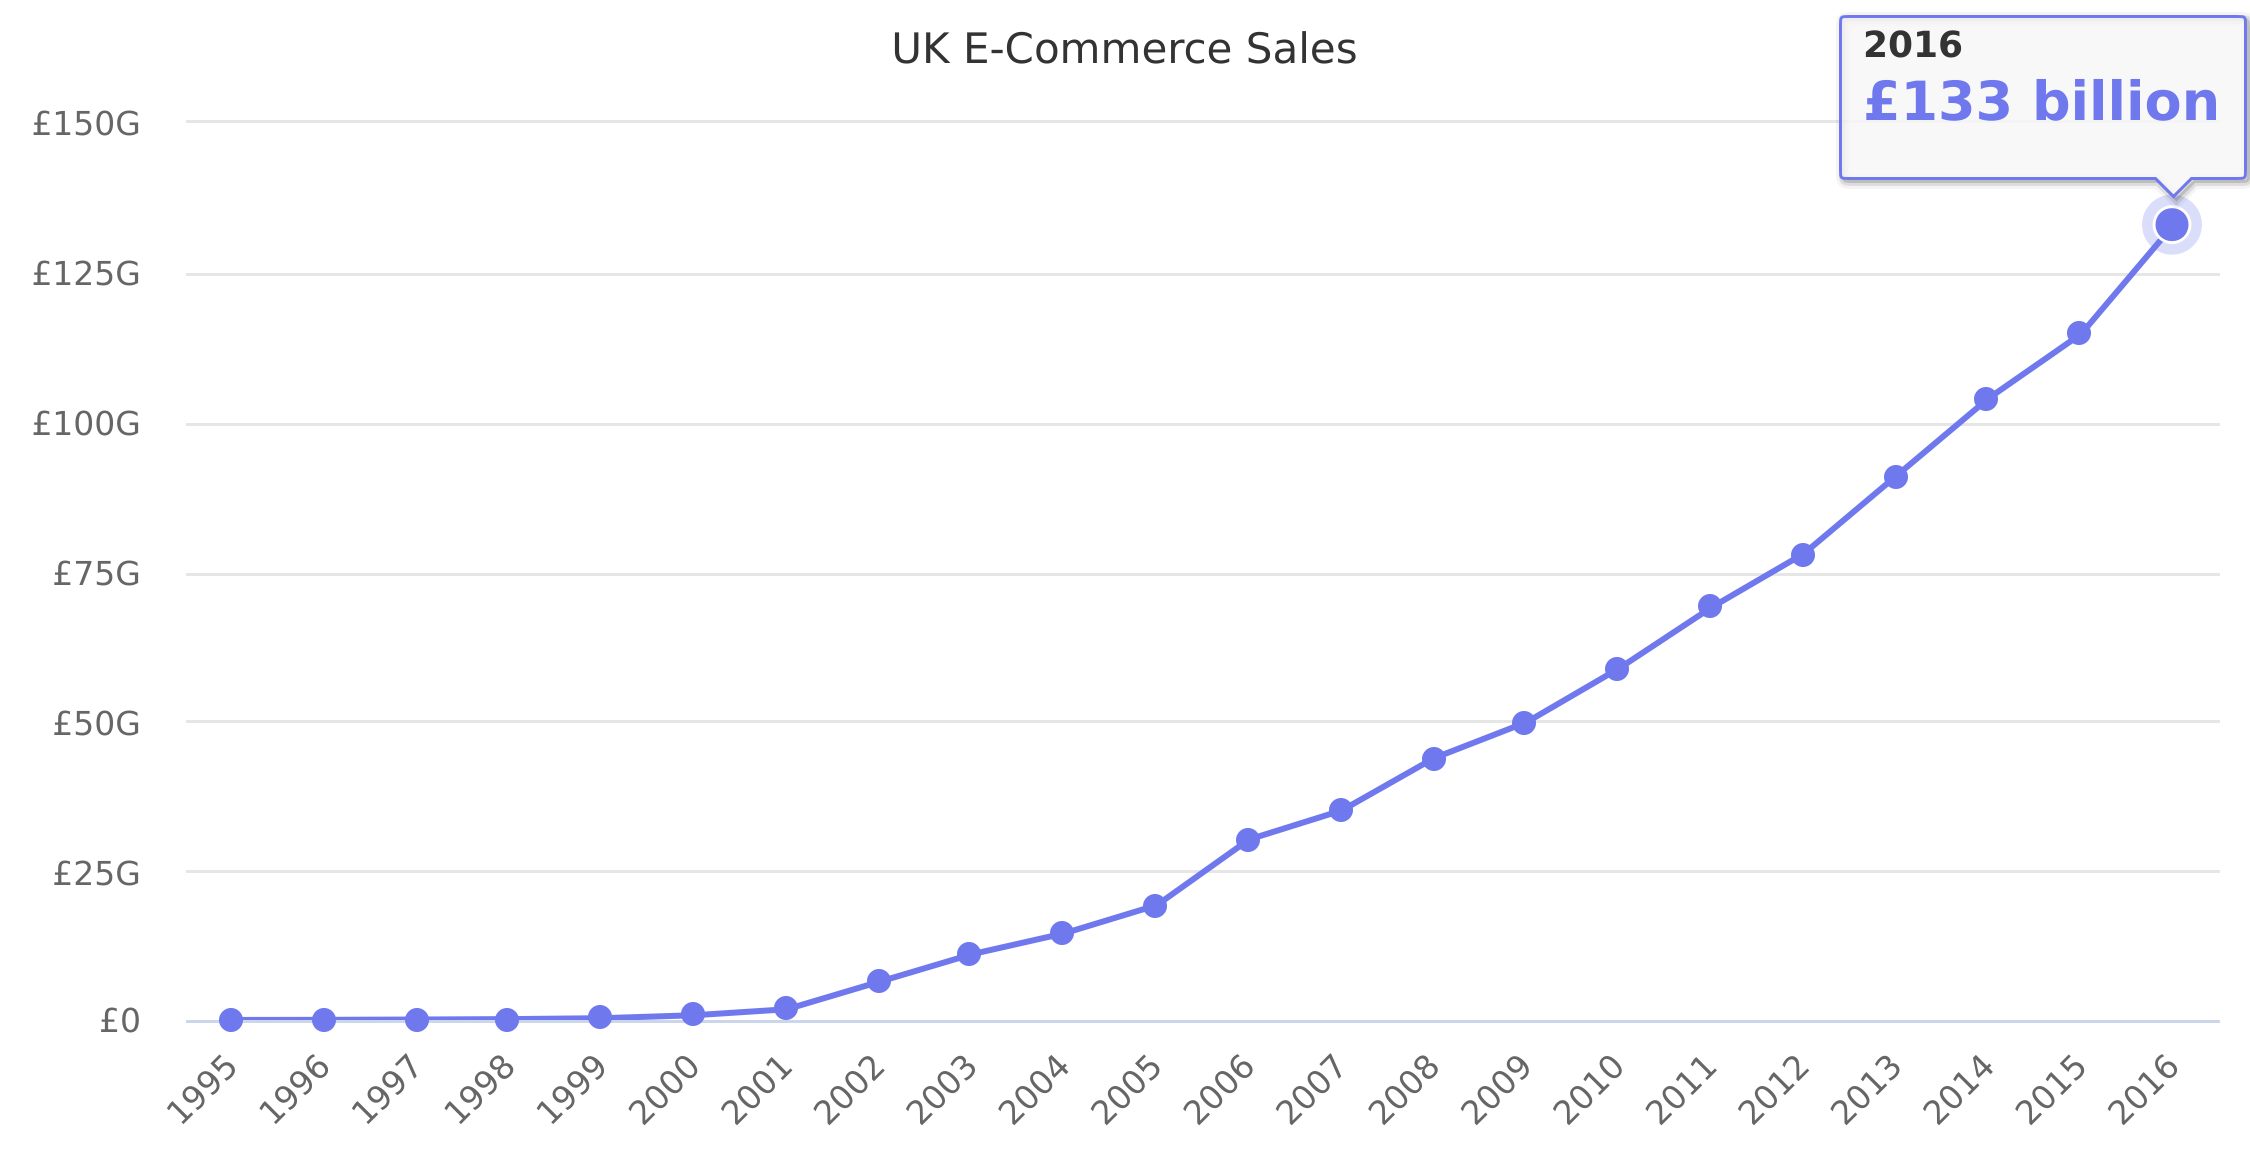 UK E-Commerce Sales 1995-2016